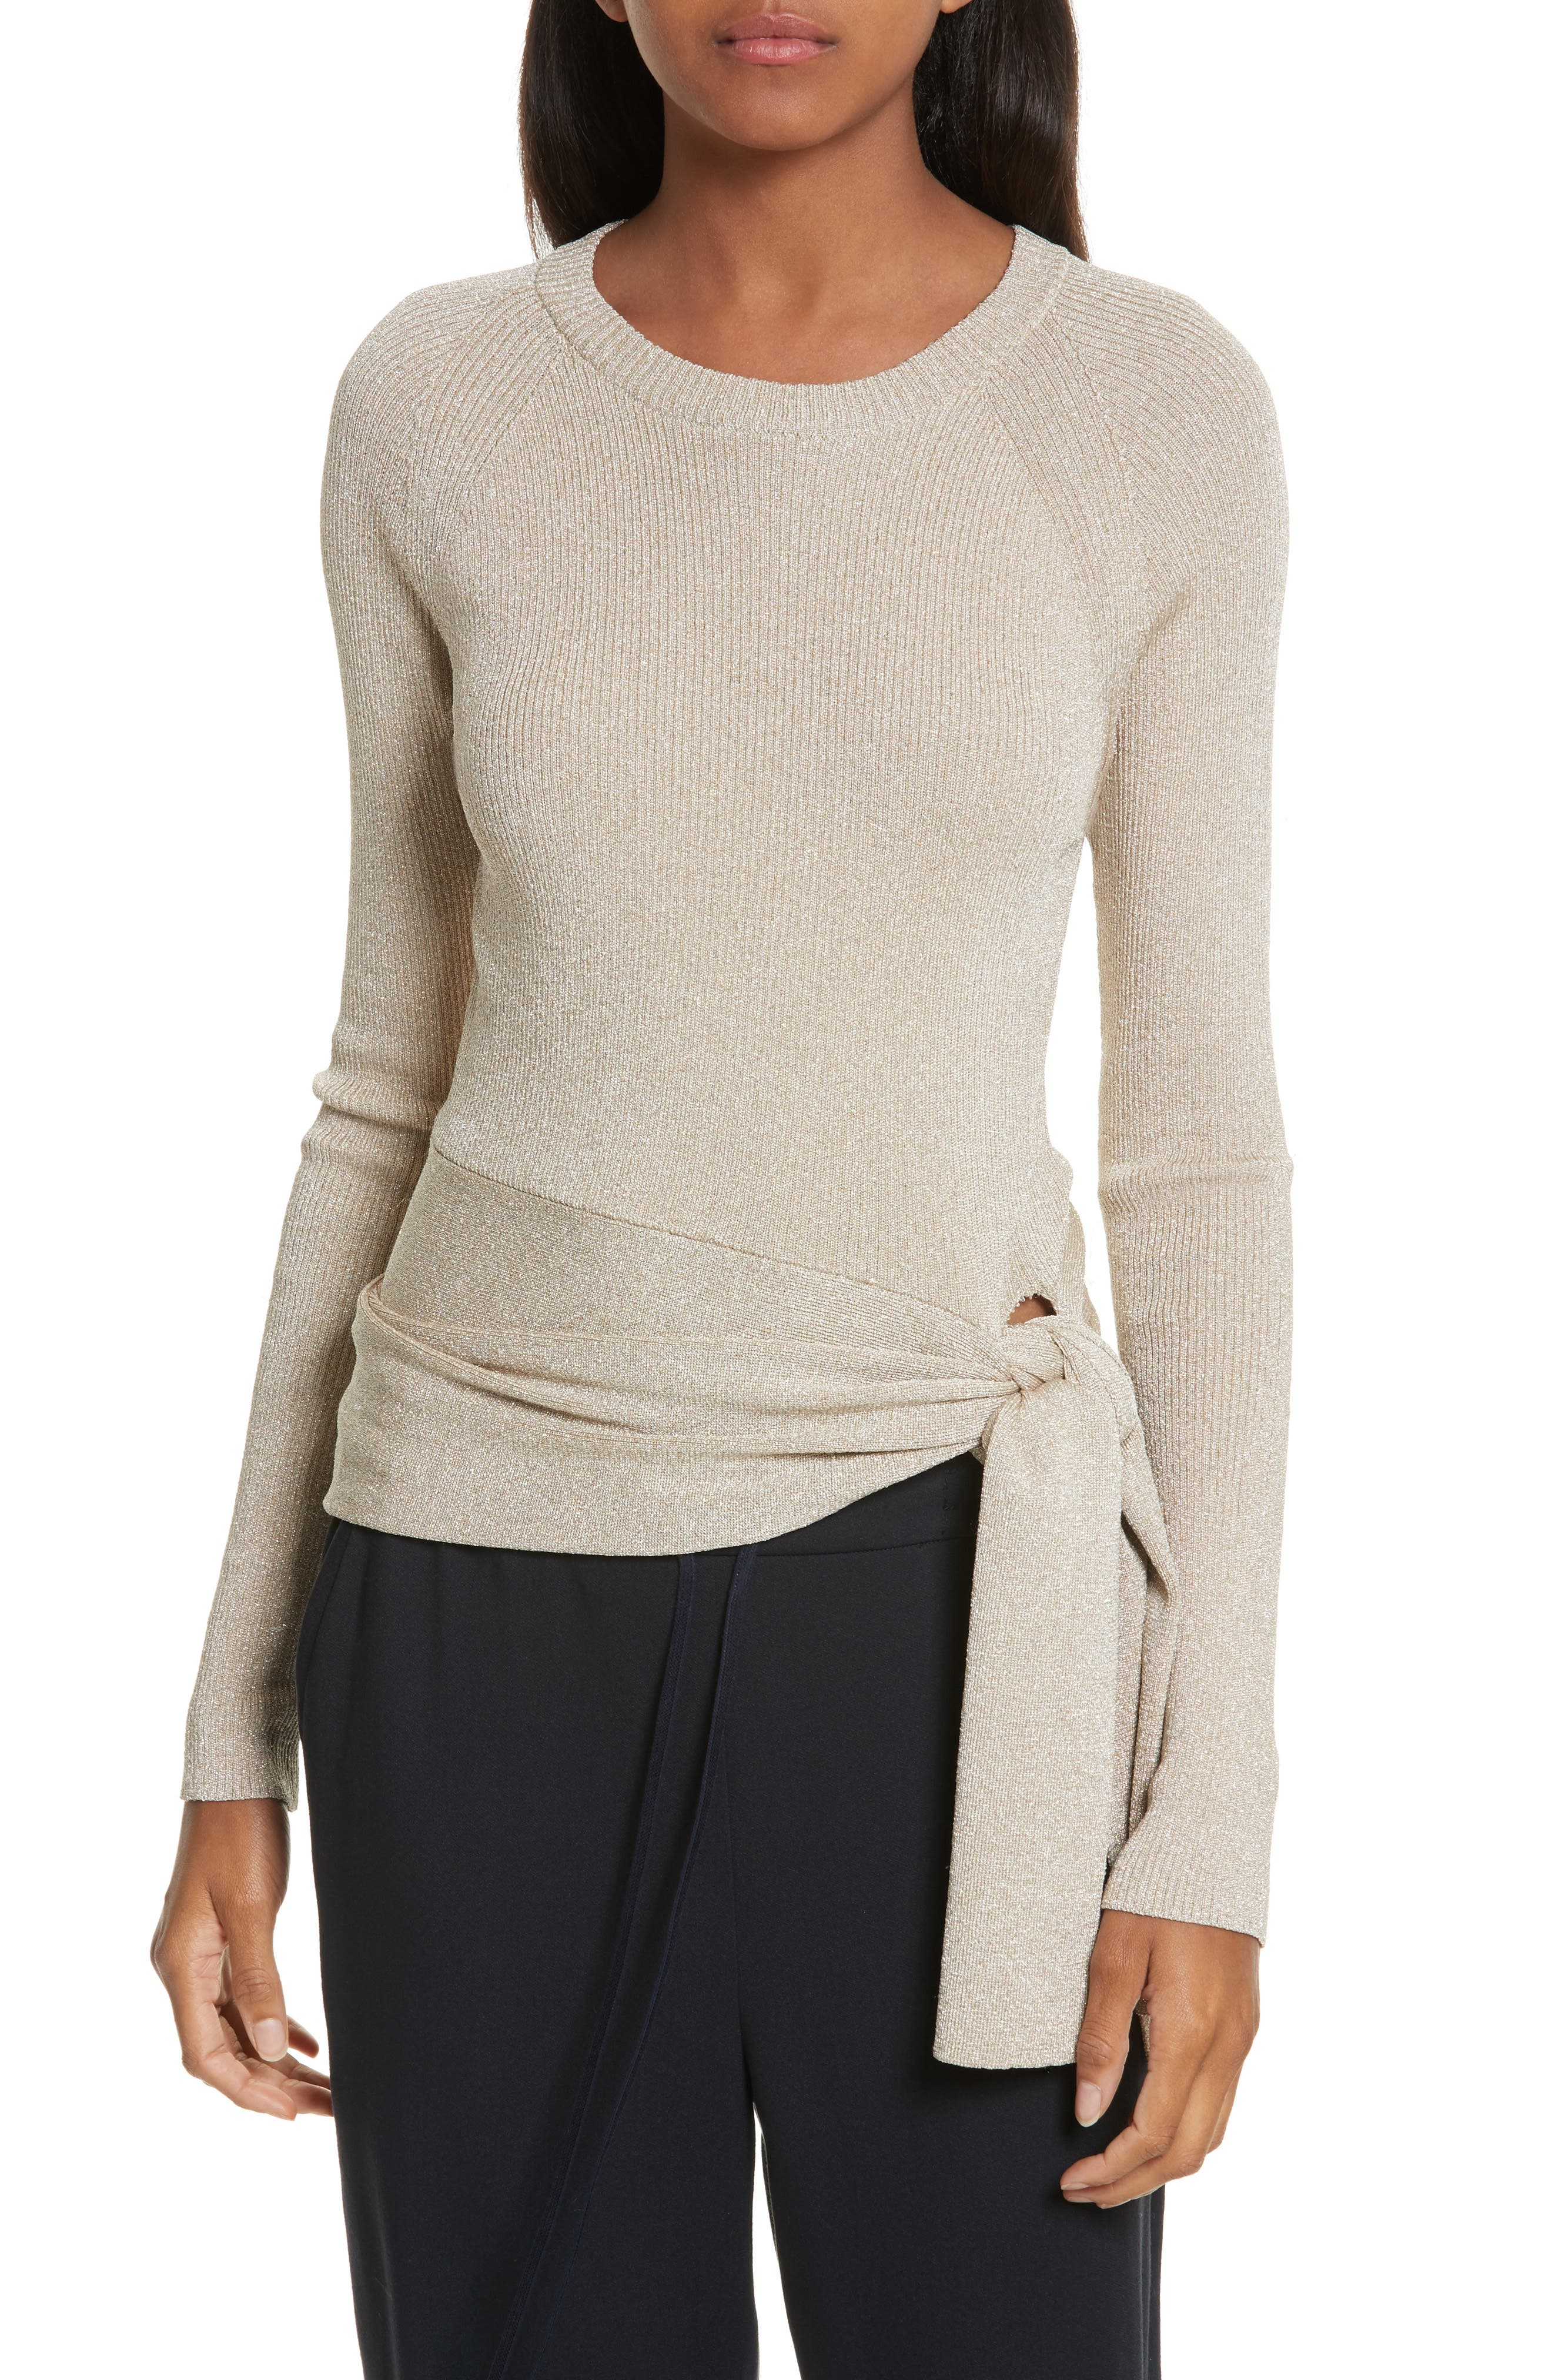 3.1 Phillip Lim Metallic Side Tie Sweater